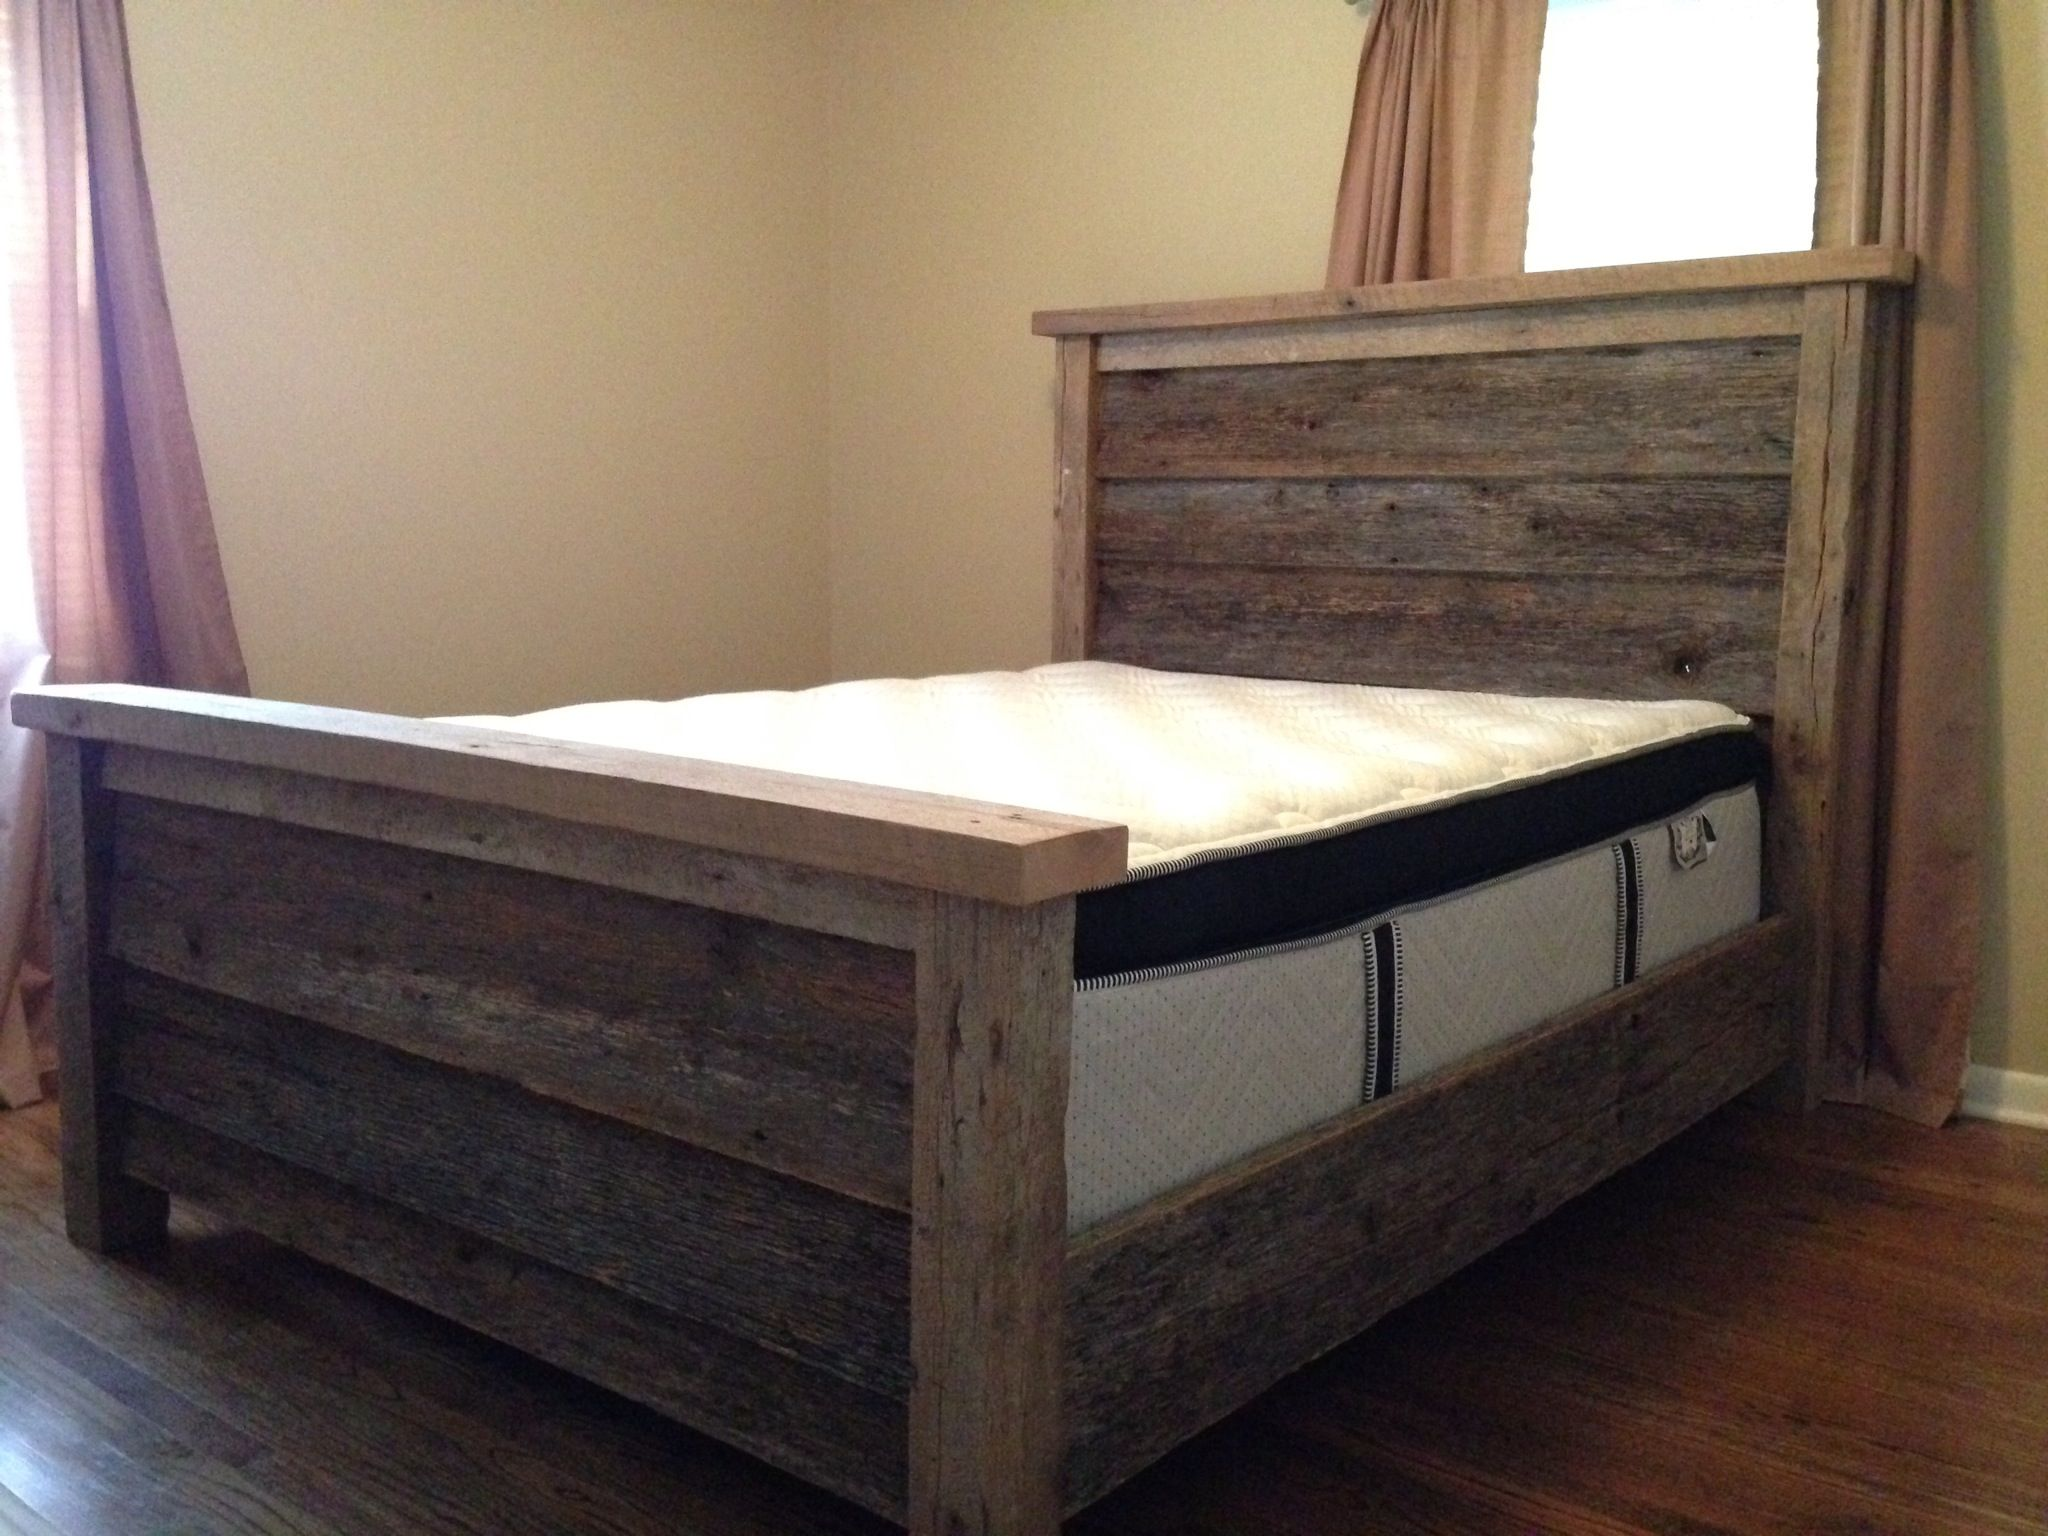 Barn Wood Queen Bed Frame So Amazing Bed Frame Headboard Bed